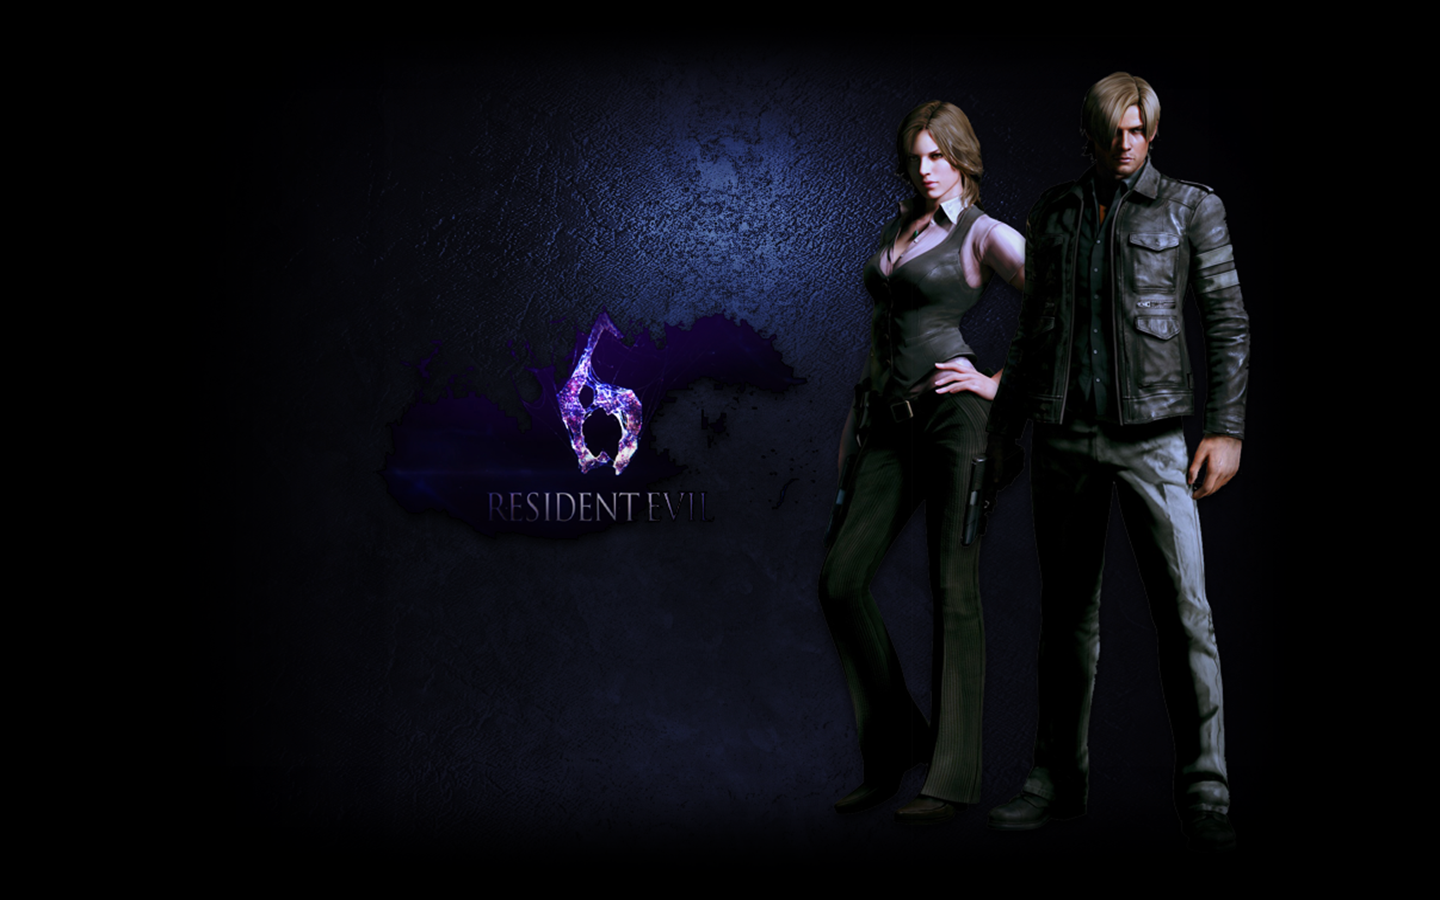 1440x900 - Resident Evil HD Wallpapers 28